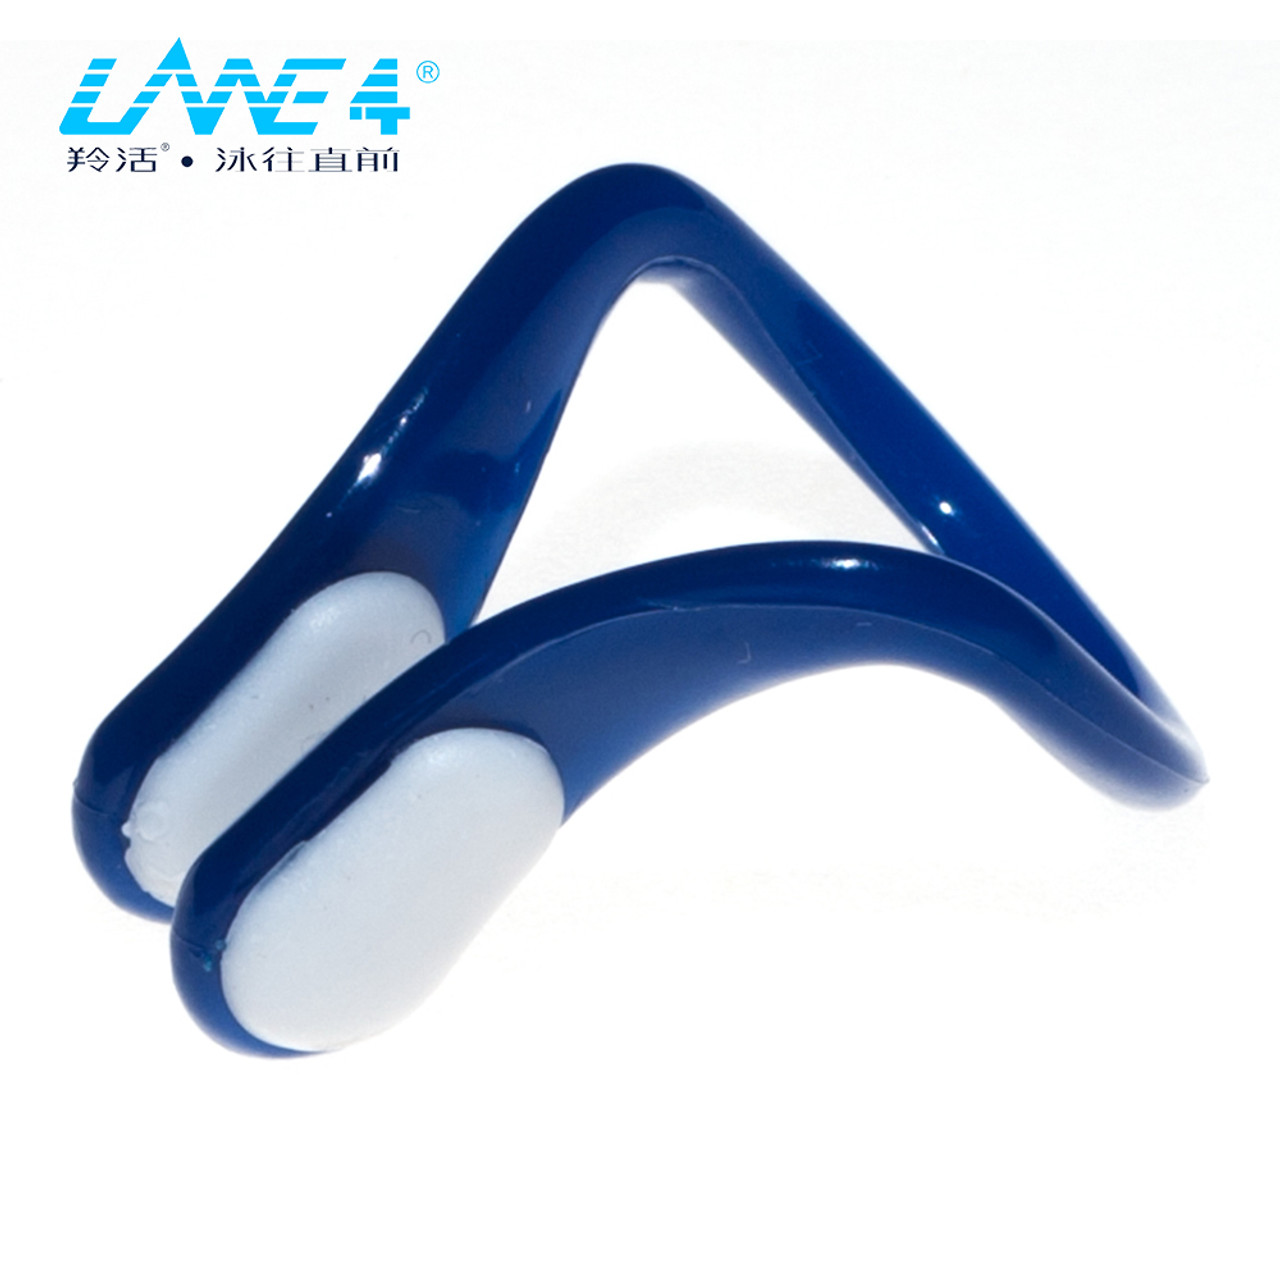 Soft Silicone Swimming Nose Clip with Storage Box for Adult Men Women Blue